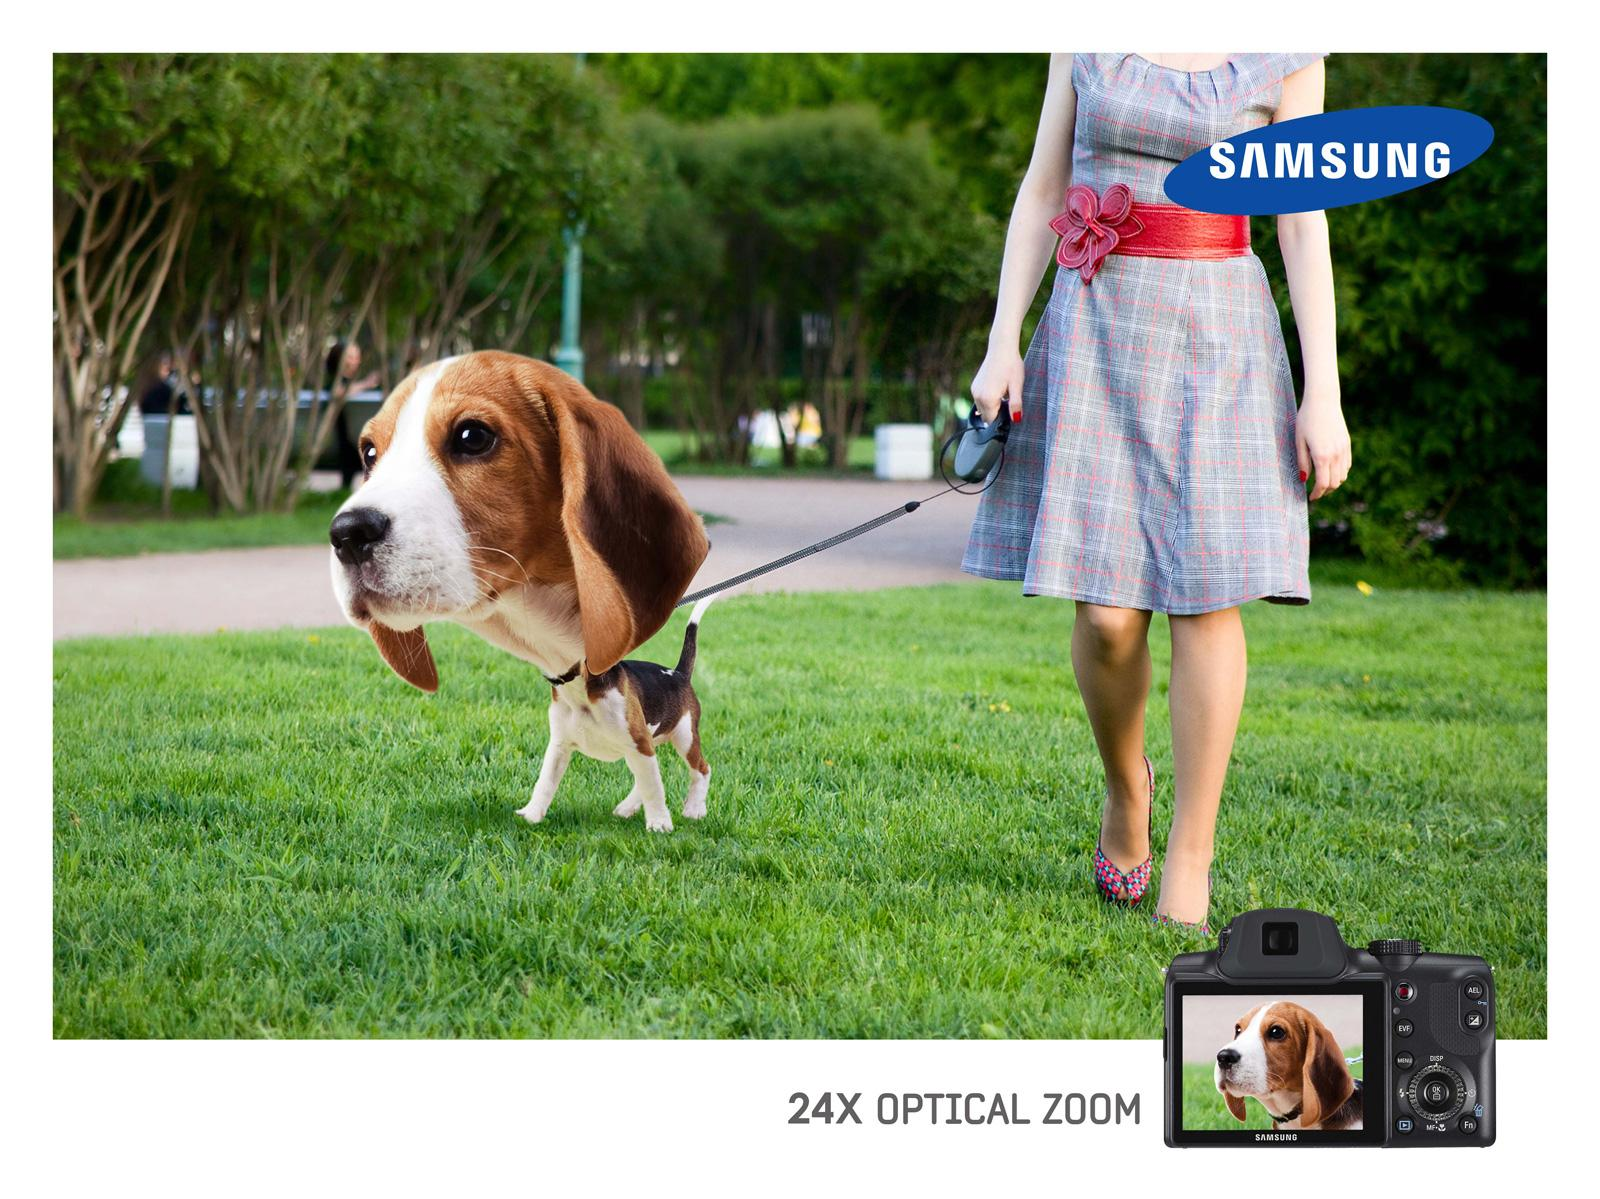 Samsung Print Ad -  Optical Zoom, Dog